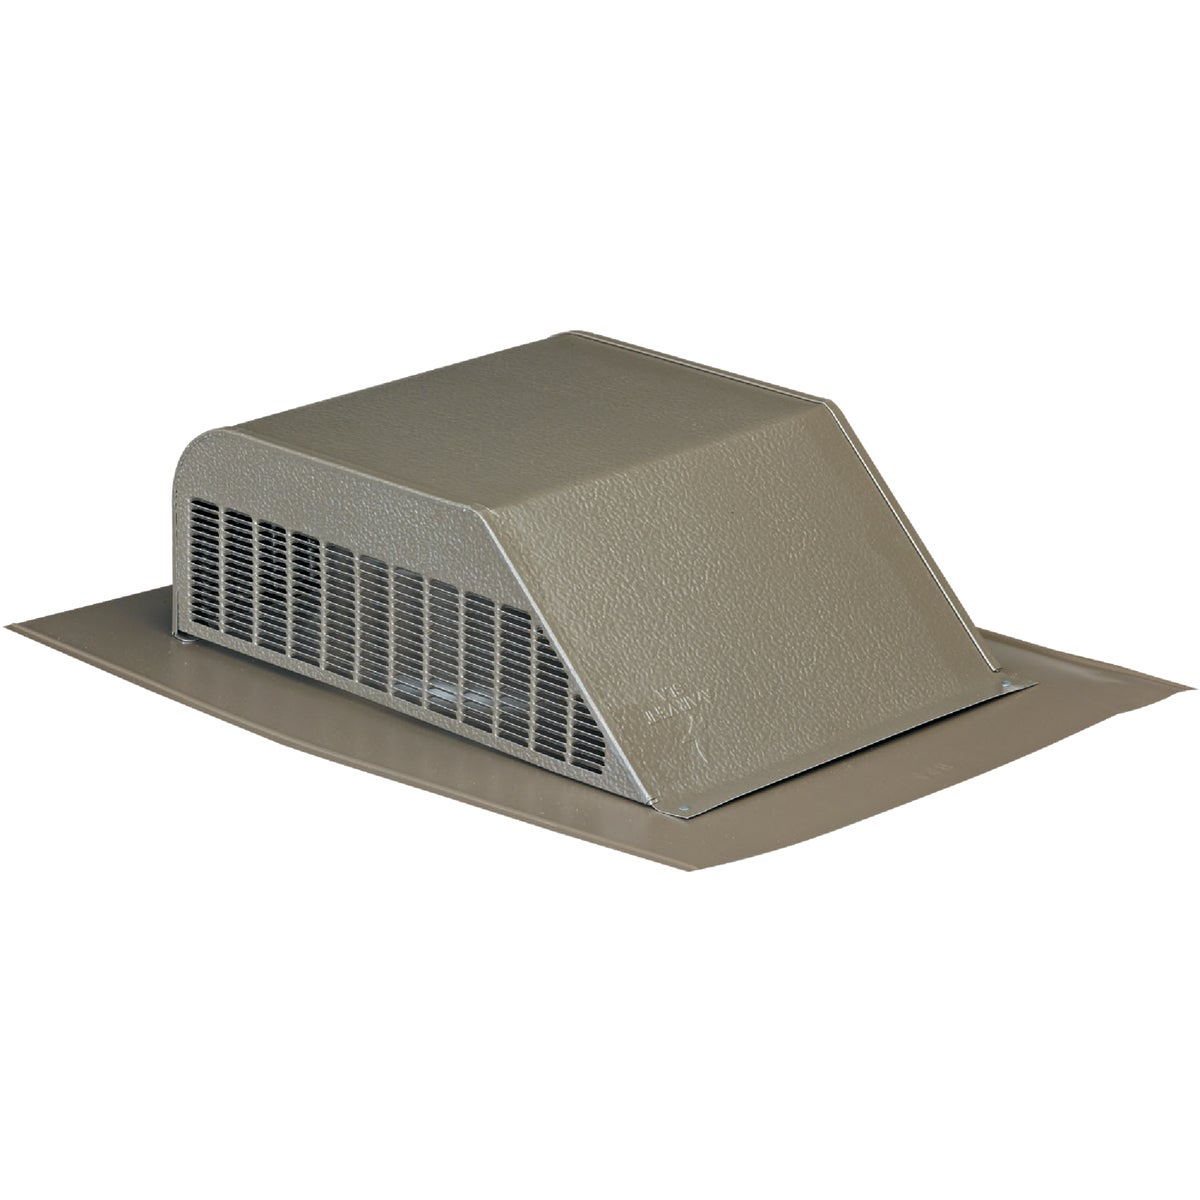 "50""WWD ALM S/B ROOF VENT - 85284 by Air Vent Inc"